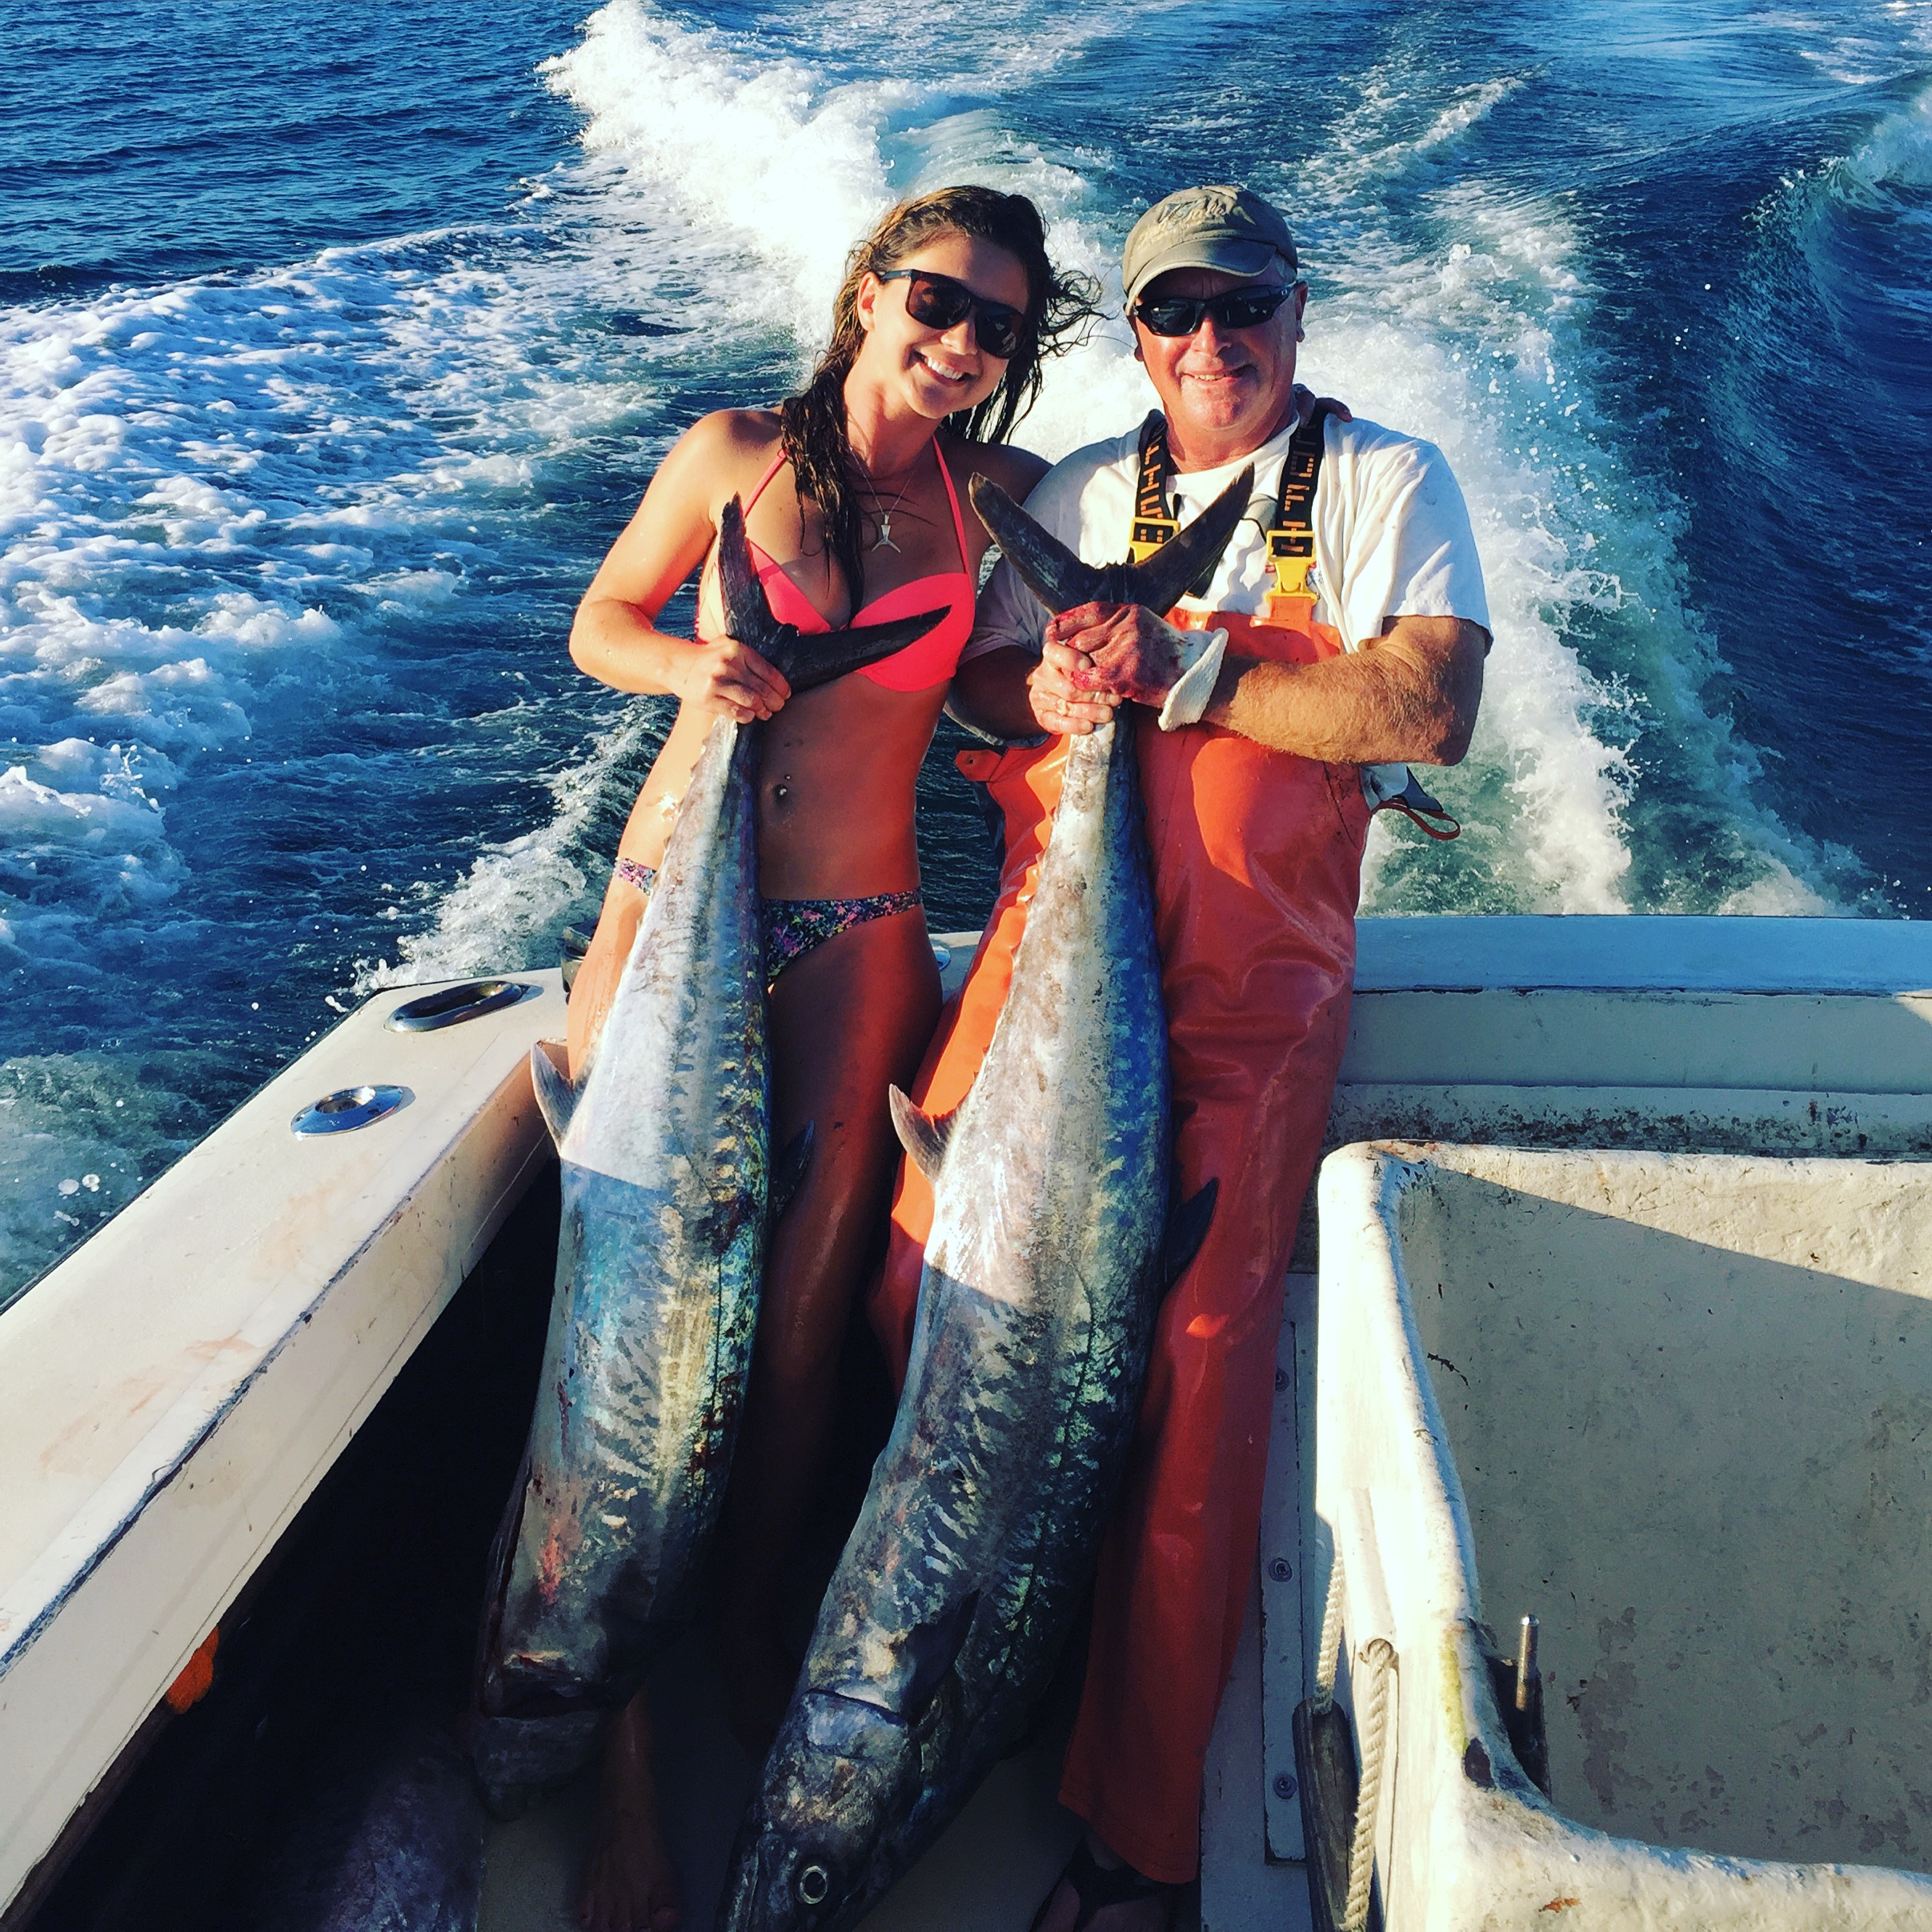 Port canaveral fishing charter rates cocoa beach fishing for Hollywood florida fishing charters